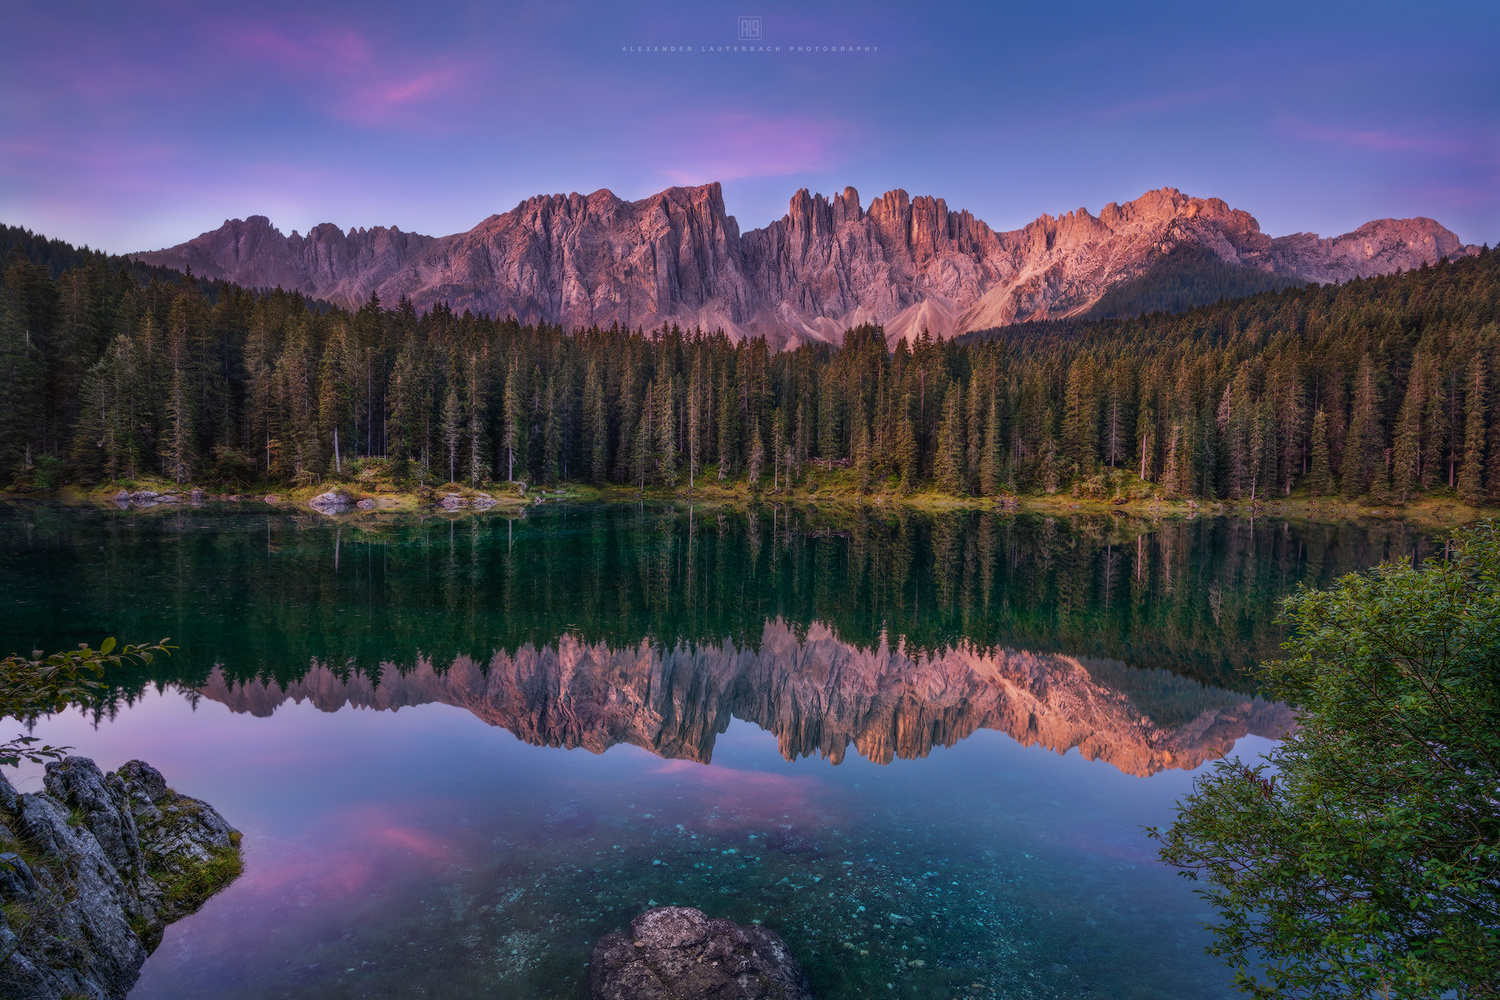 Morning dawn at lago di Carezza by Alexander Lauterbach